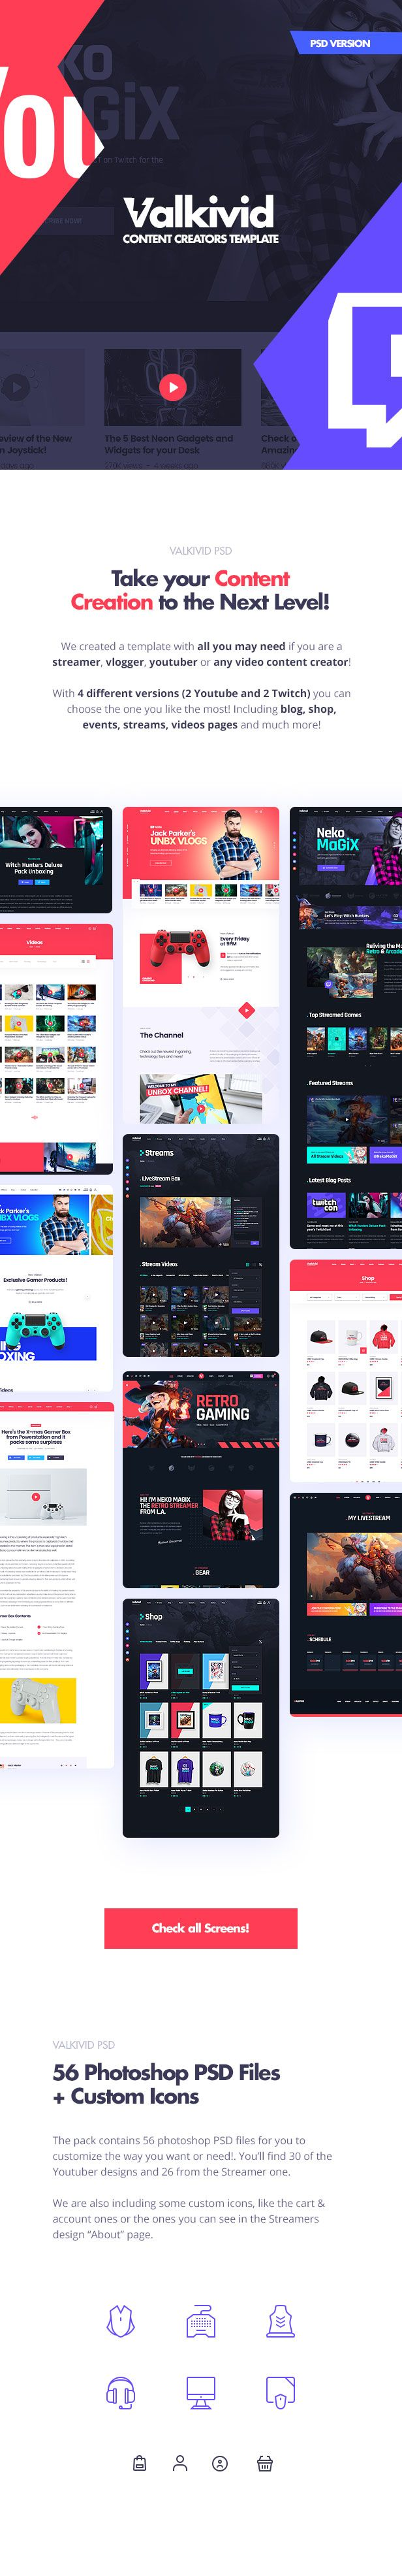 Valkivid - Streamer and Youtuber PSD Template - 9